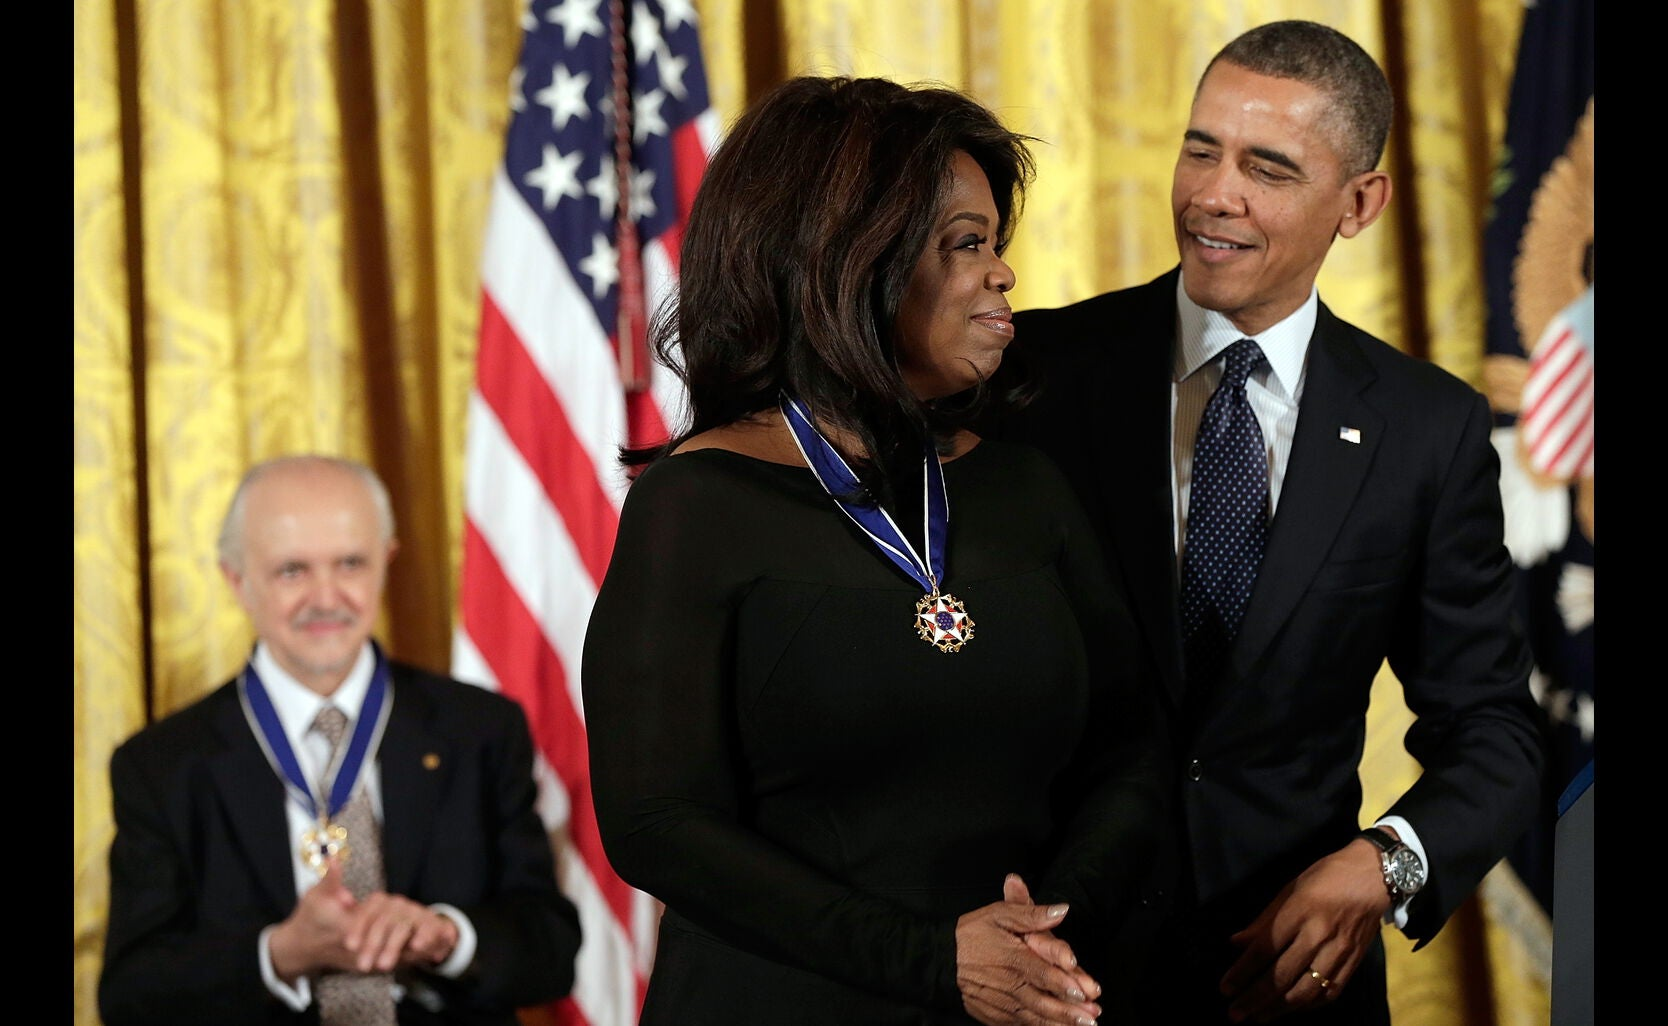 Oprah receives Presidnetial Medal of Freedom, 2013